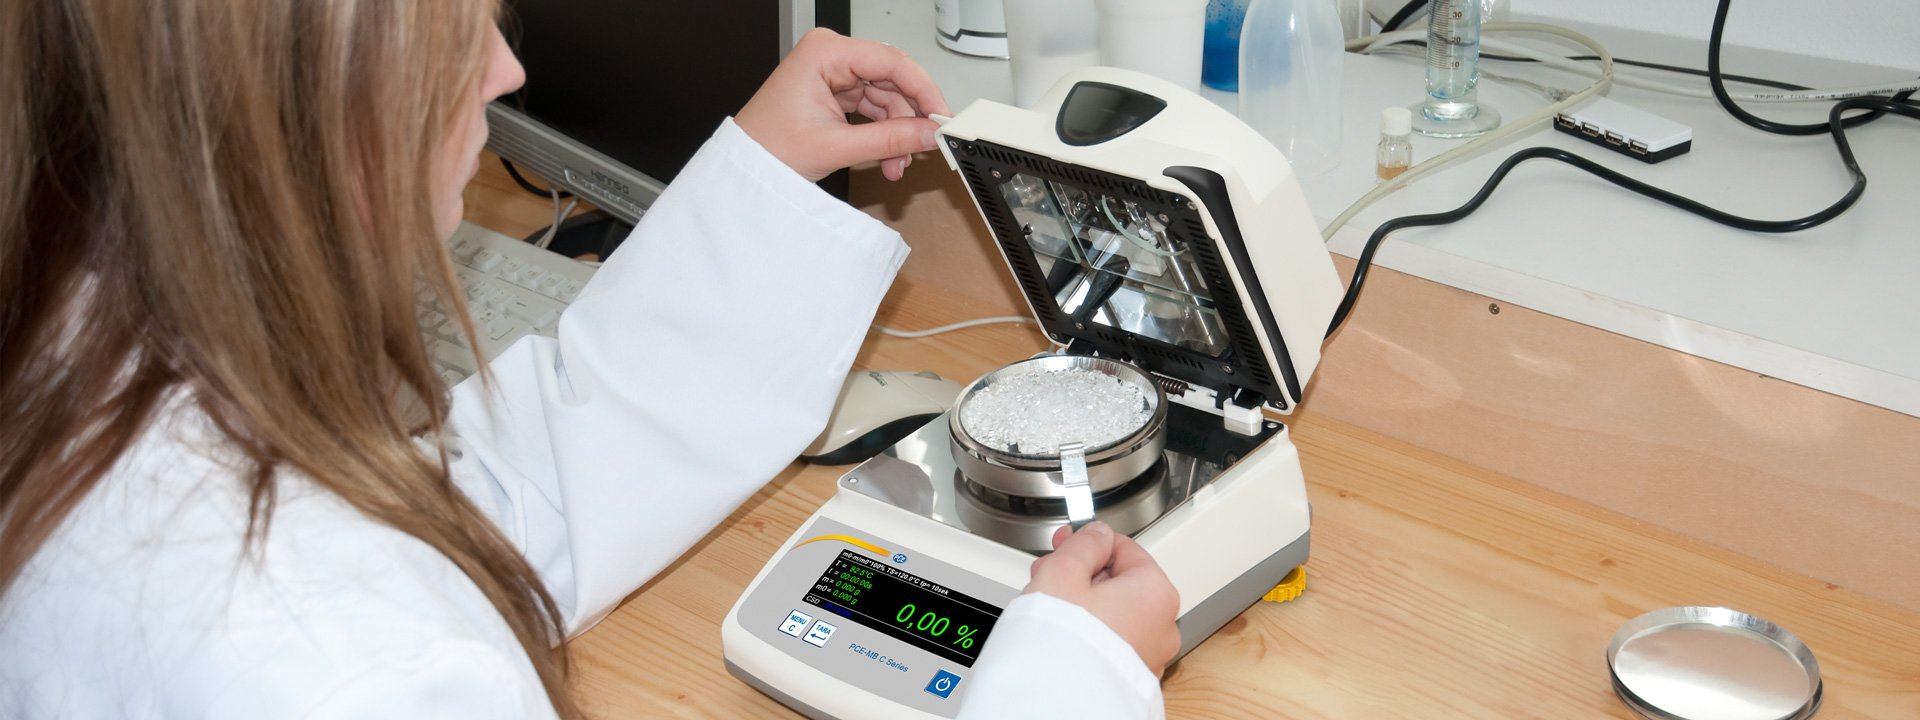 Laboratory equipment and scales for industrial and commercial requirements